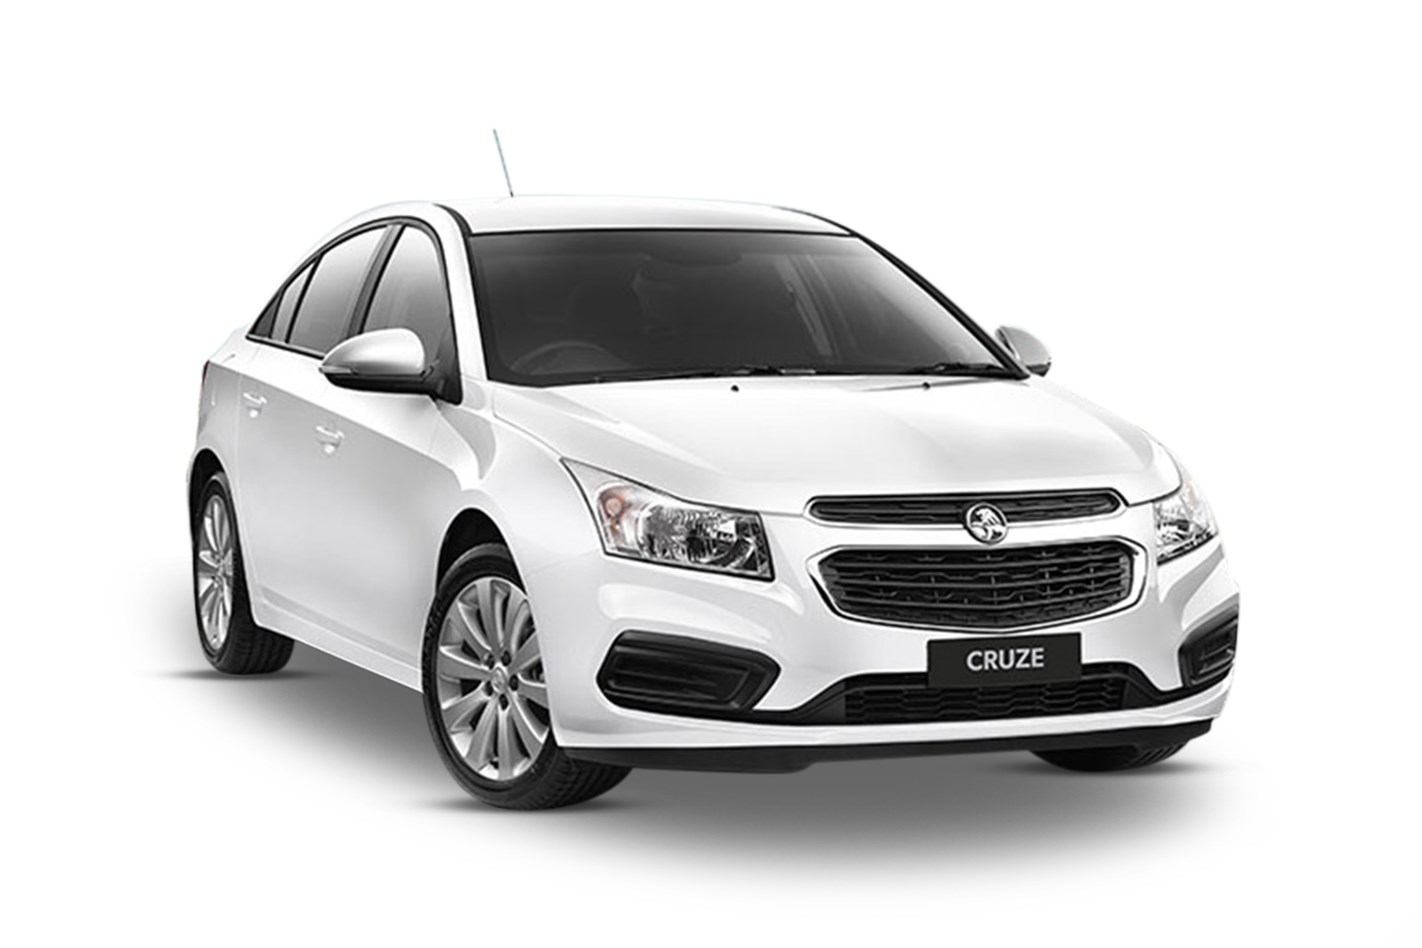 2016 chevrolet cruze sedan revealed australian prospects autos post. Black Bedroom Furniture Sets. Home Design Ideas